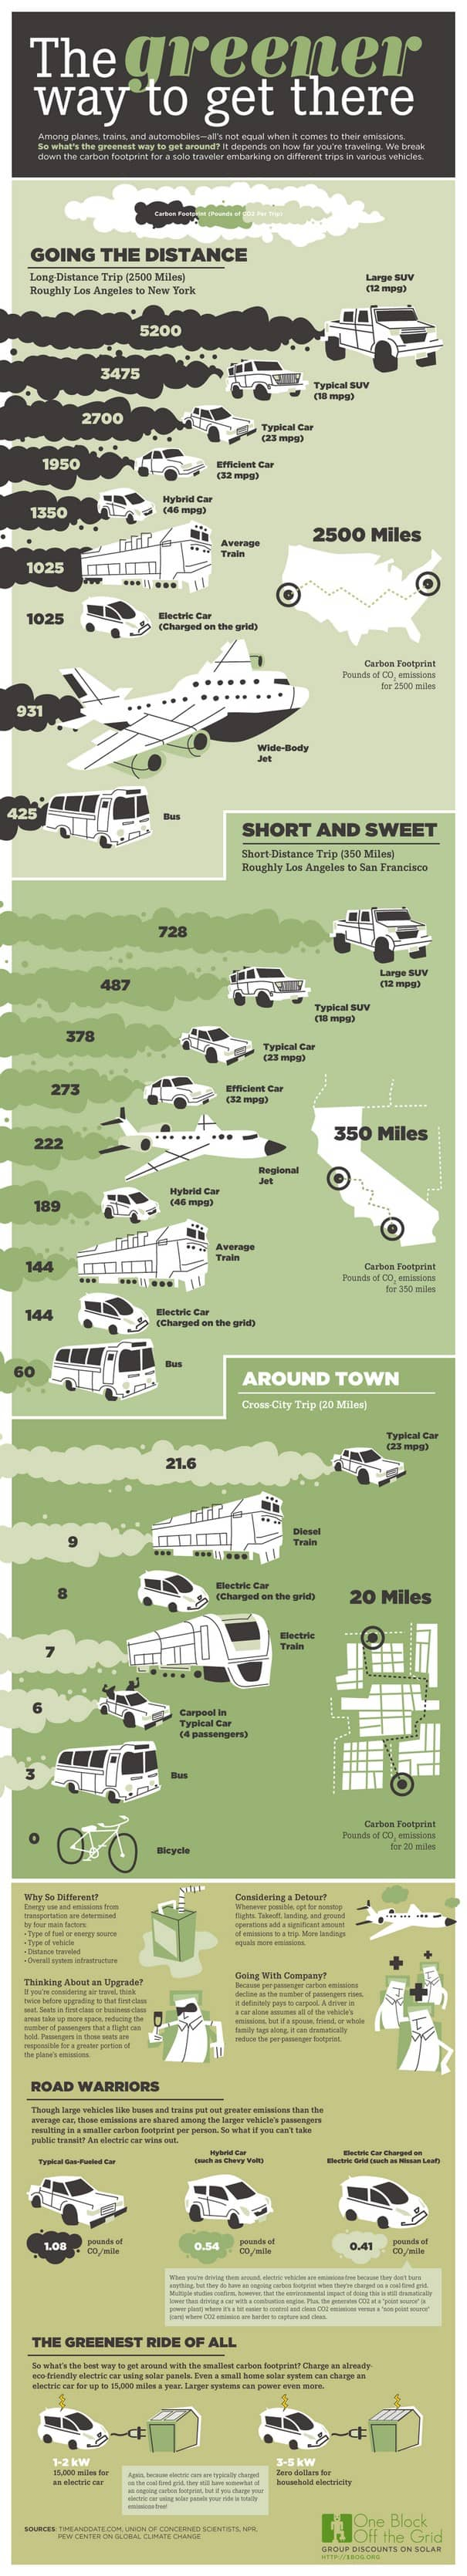 Infographic The Greener Way to Get There